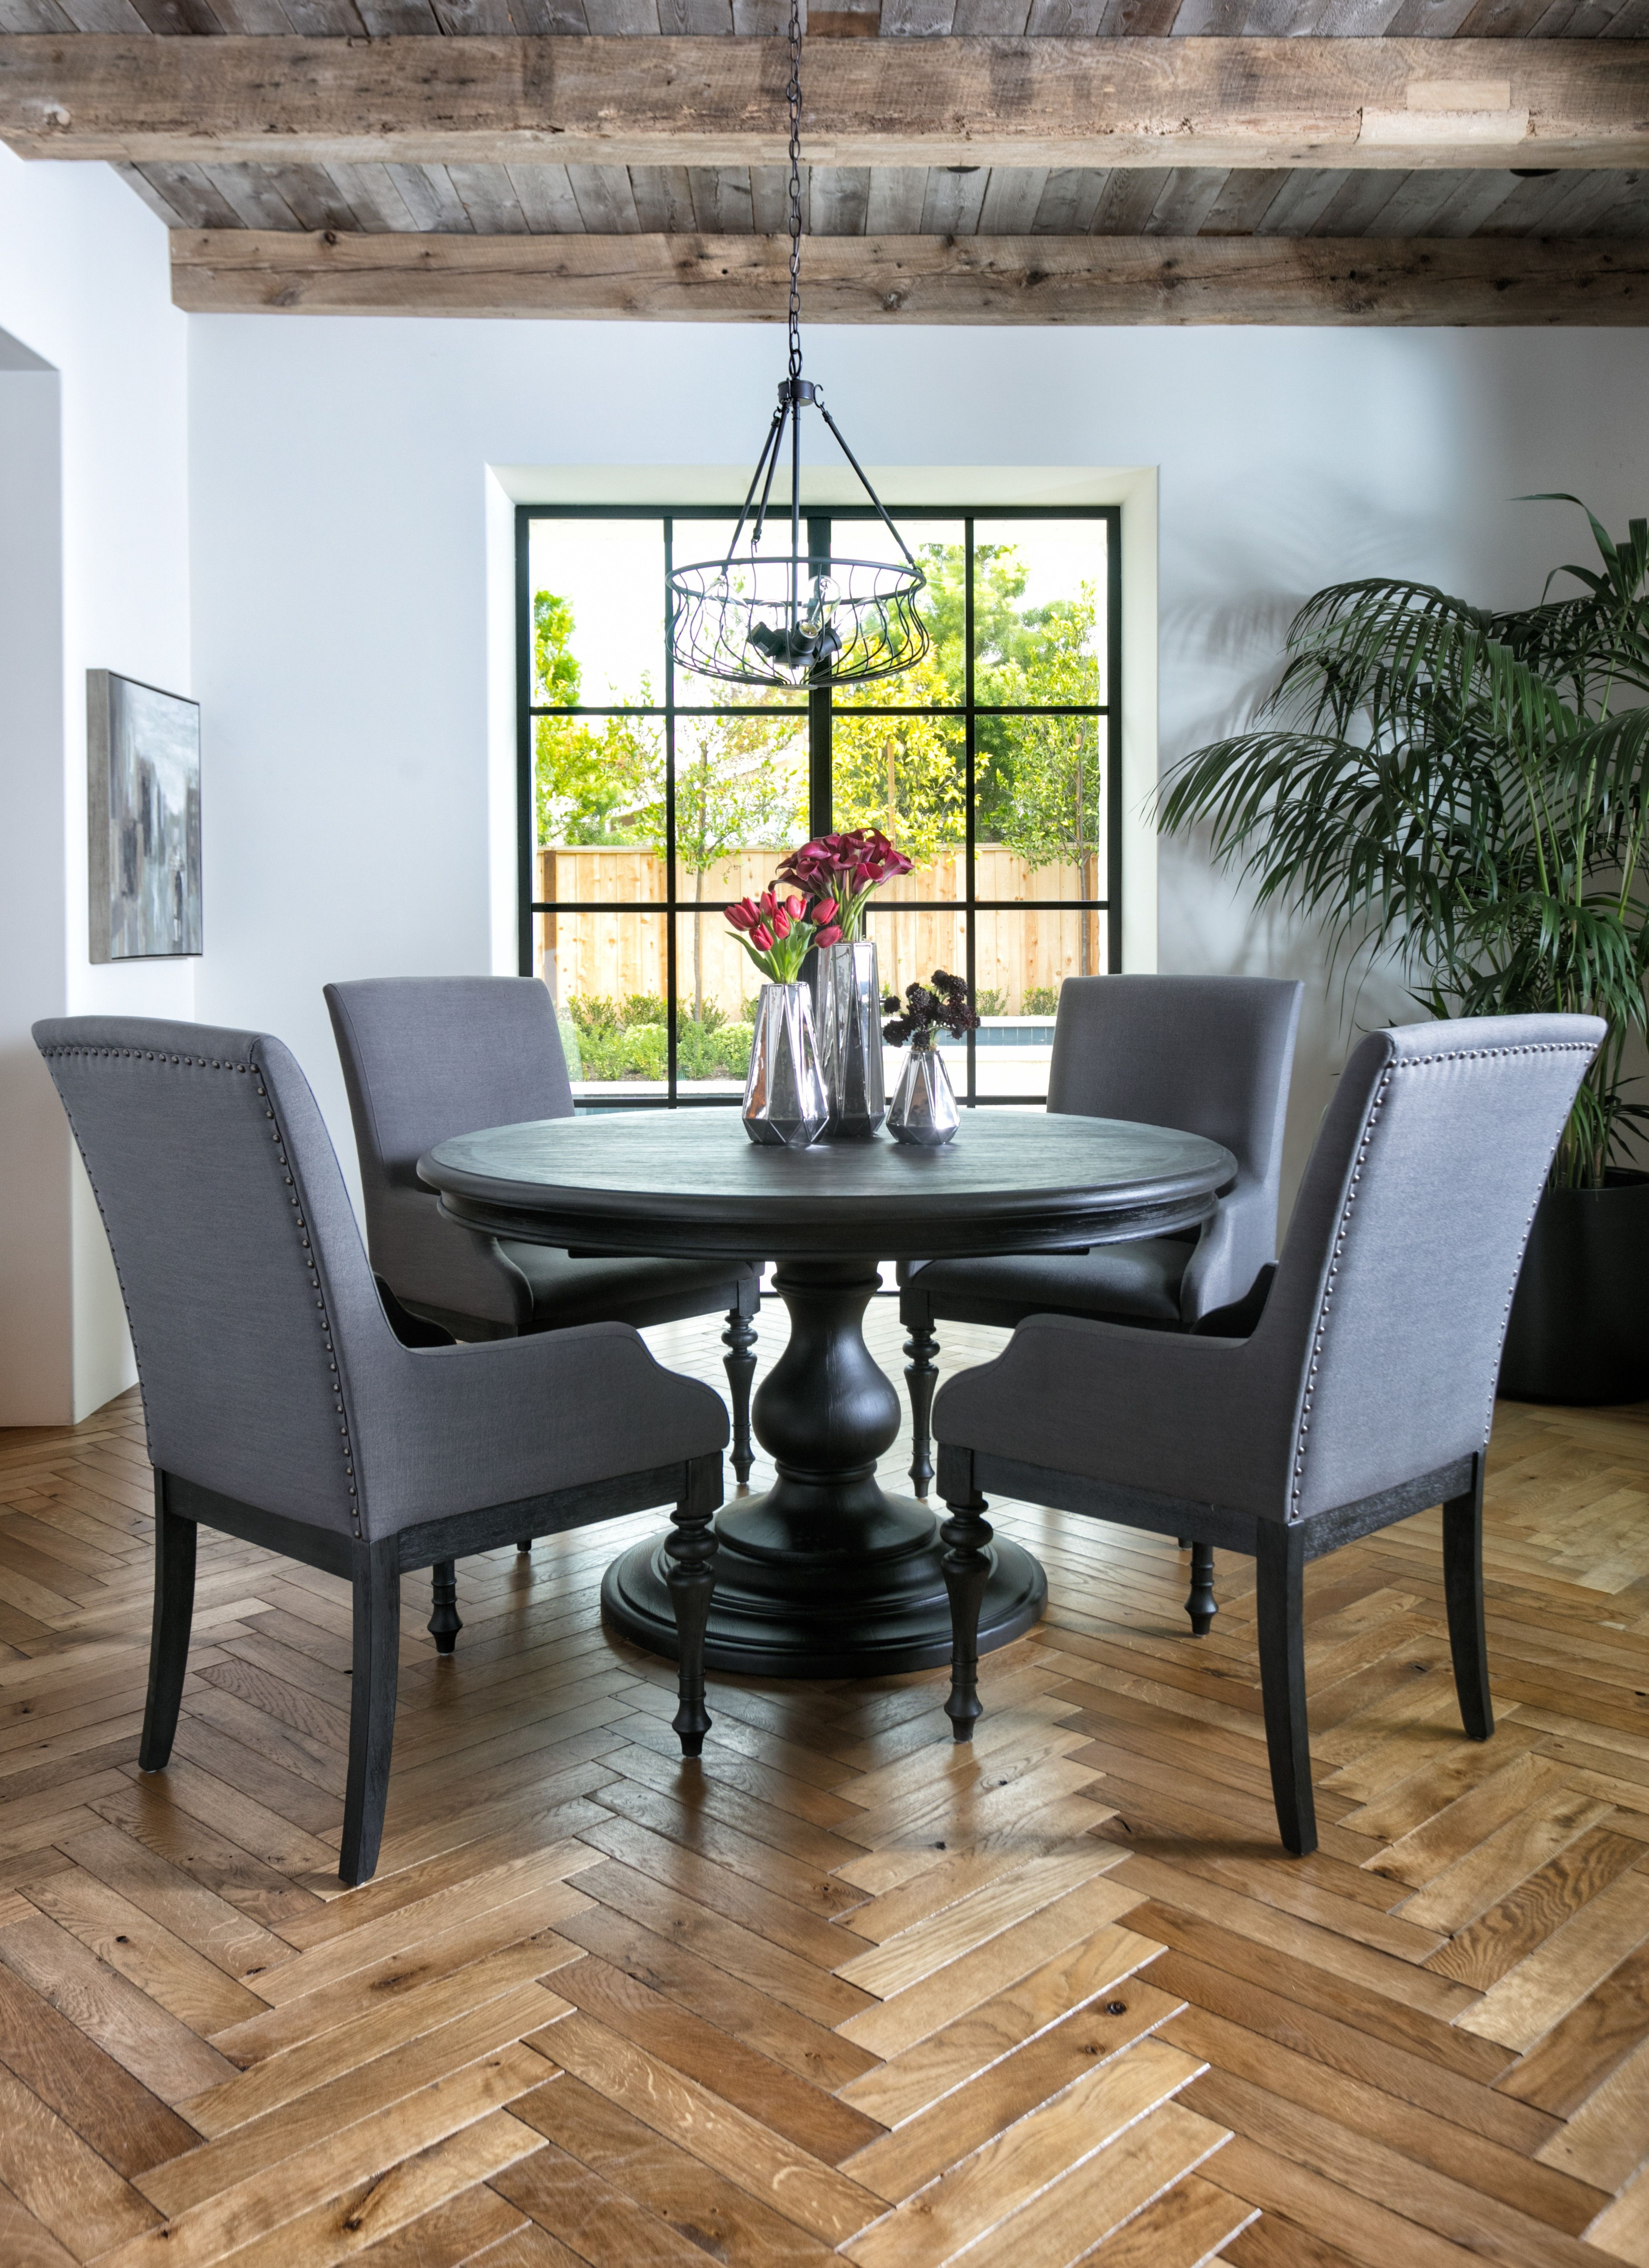 Most Recent Caira Black 5 Piece Round Dining Set With Diamond Back Side Chairs For Caira Black Upholstered Side Chairs (View 13 of 20)